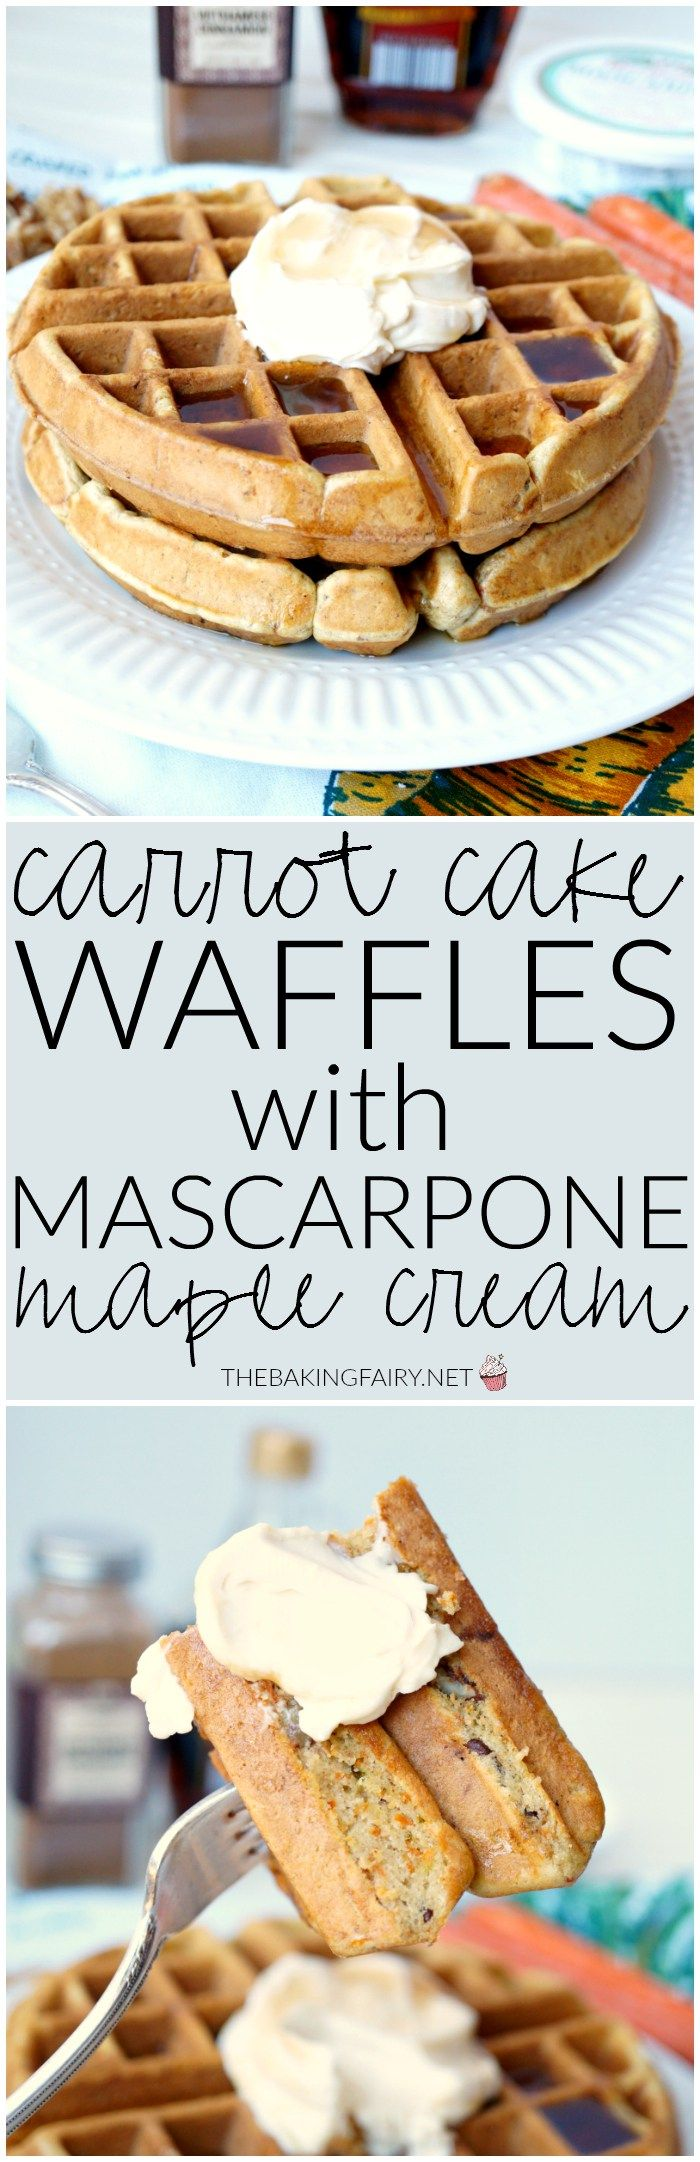 USE MY CINN-A-WONDERFUL ORGANIC WAFFLE MIX & ADD THE SHREDDED CARROTS FOR THIS ONE!  carrot cake waffles with mascarpone maple cream | The Baking Fairy